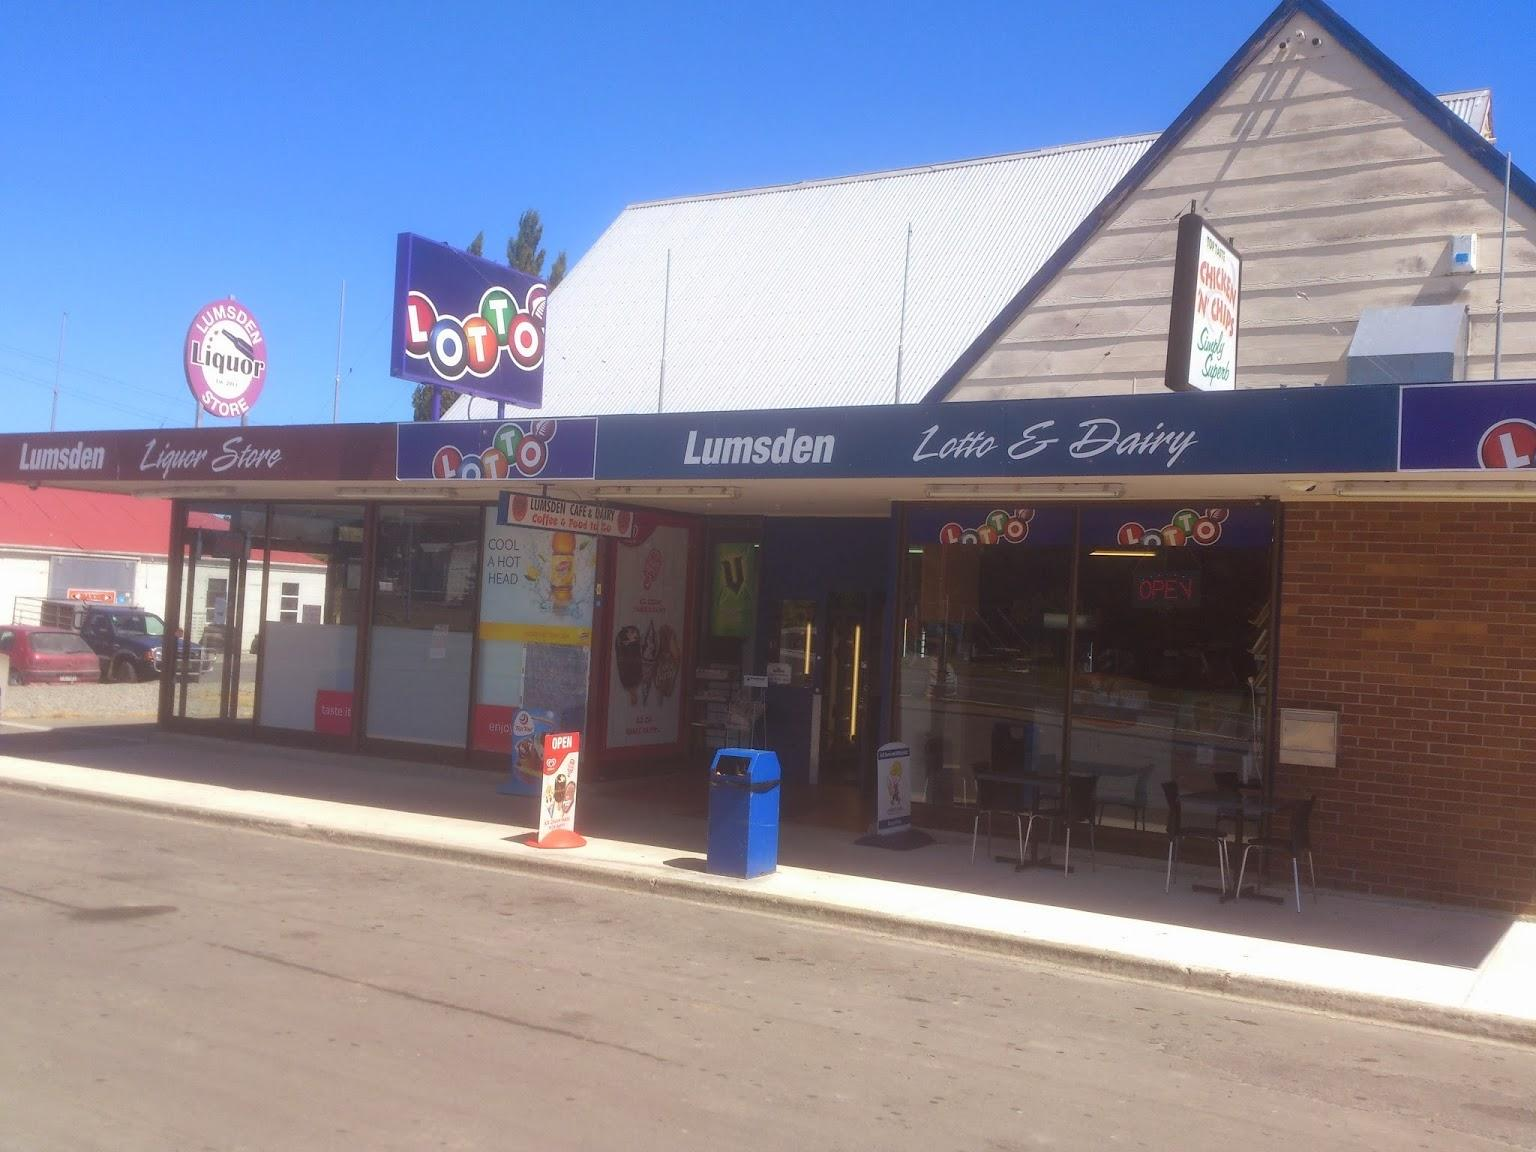 Lumsden Lotto & Dairy